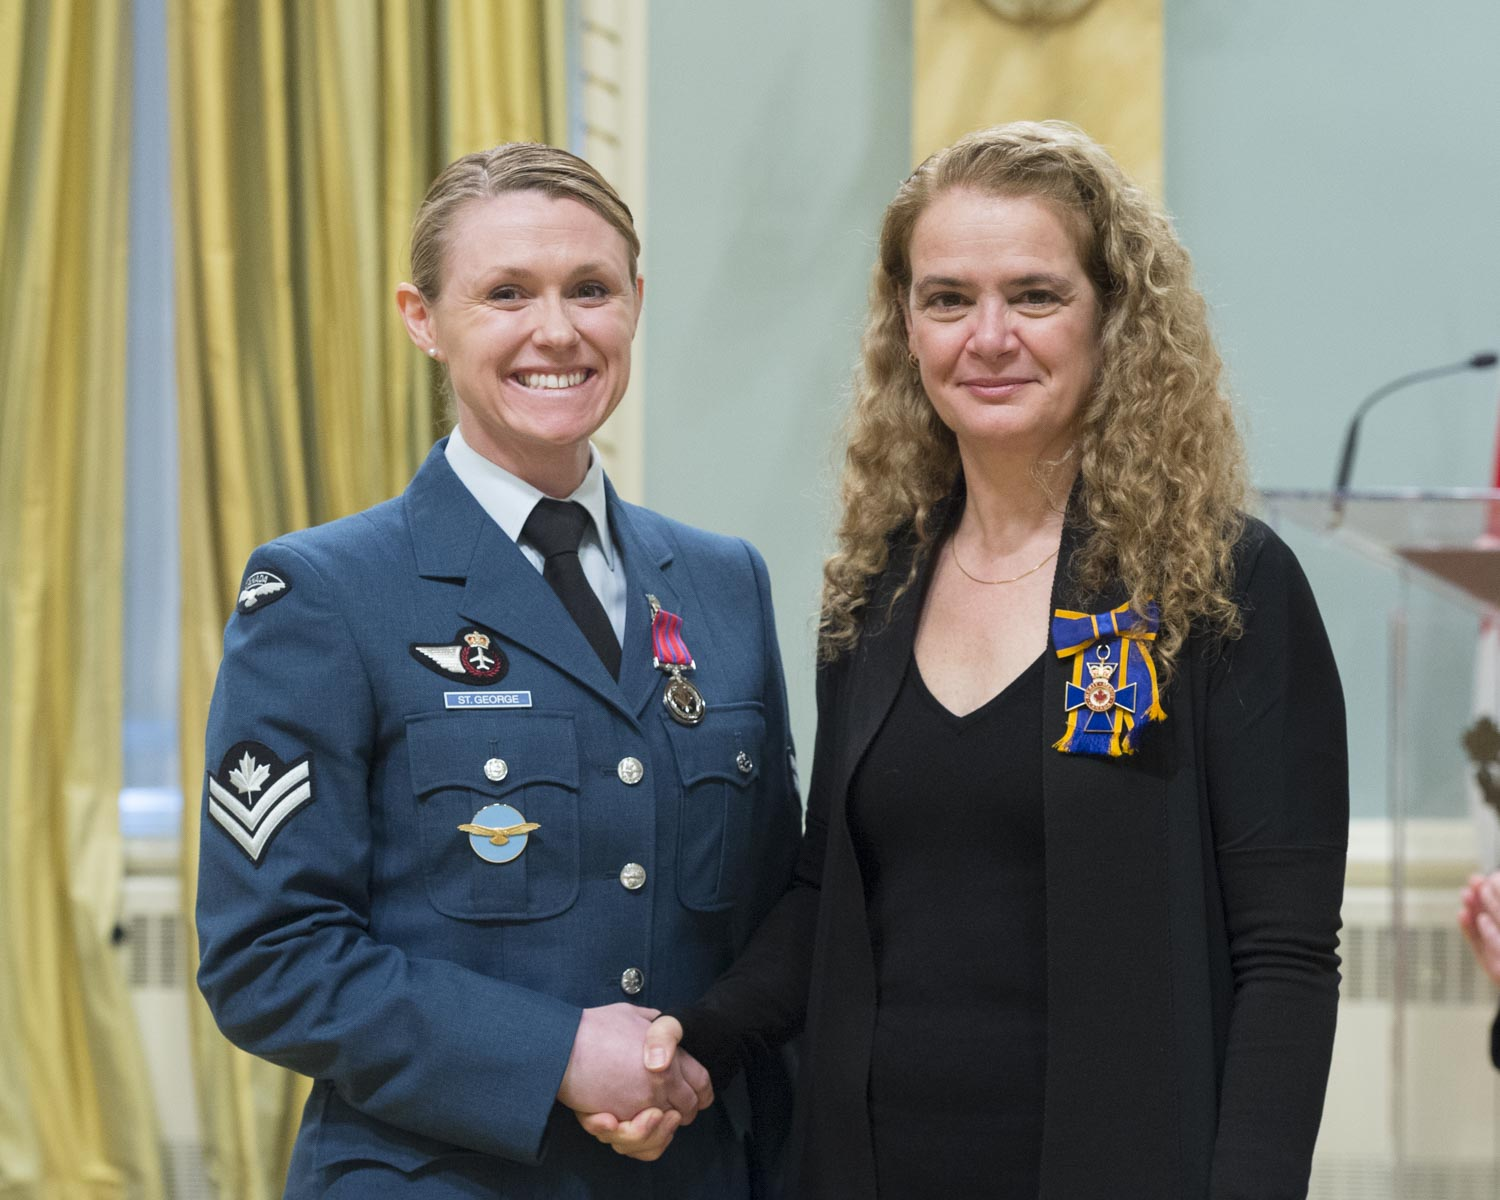 The Governor General presented the Medal of Bravery to Master Corporal Alisha Dawn St.George. On March 11, 2015, Master Corporal Alisha St. George, then-Corporal Fisher, saved a colleague from drowning in the ocean at Torrey Pines State Beach Park, near San Diego, California. The victim had been caught in a rip tide and was struggling to reach the shore. Seeing his predicament, Master Corporal St. George rushed into the water and, after reaching his side, held the distressed man afloat for several minutes. A lifeguard finally reached them and brought the victim to safety, while Master Corporal St. George made it back to shore on her own.